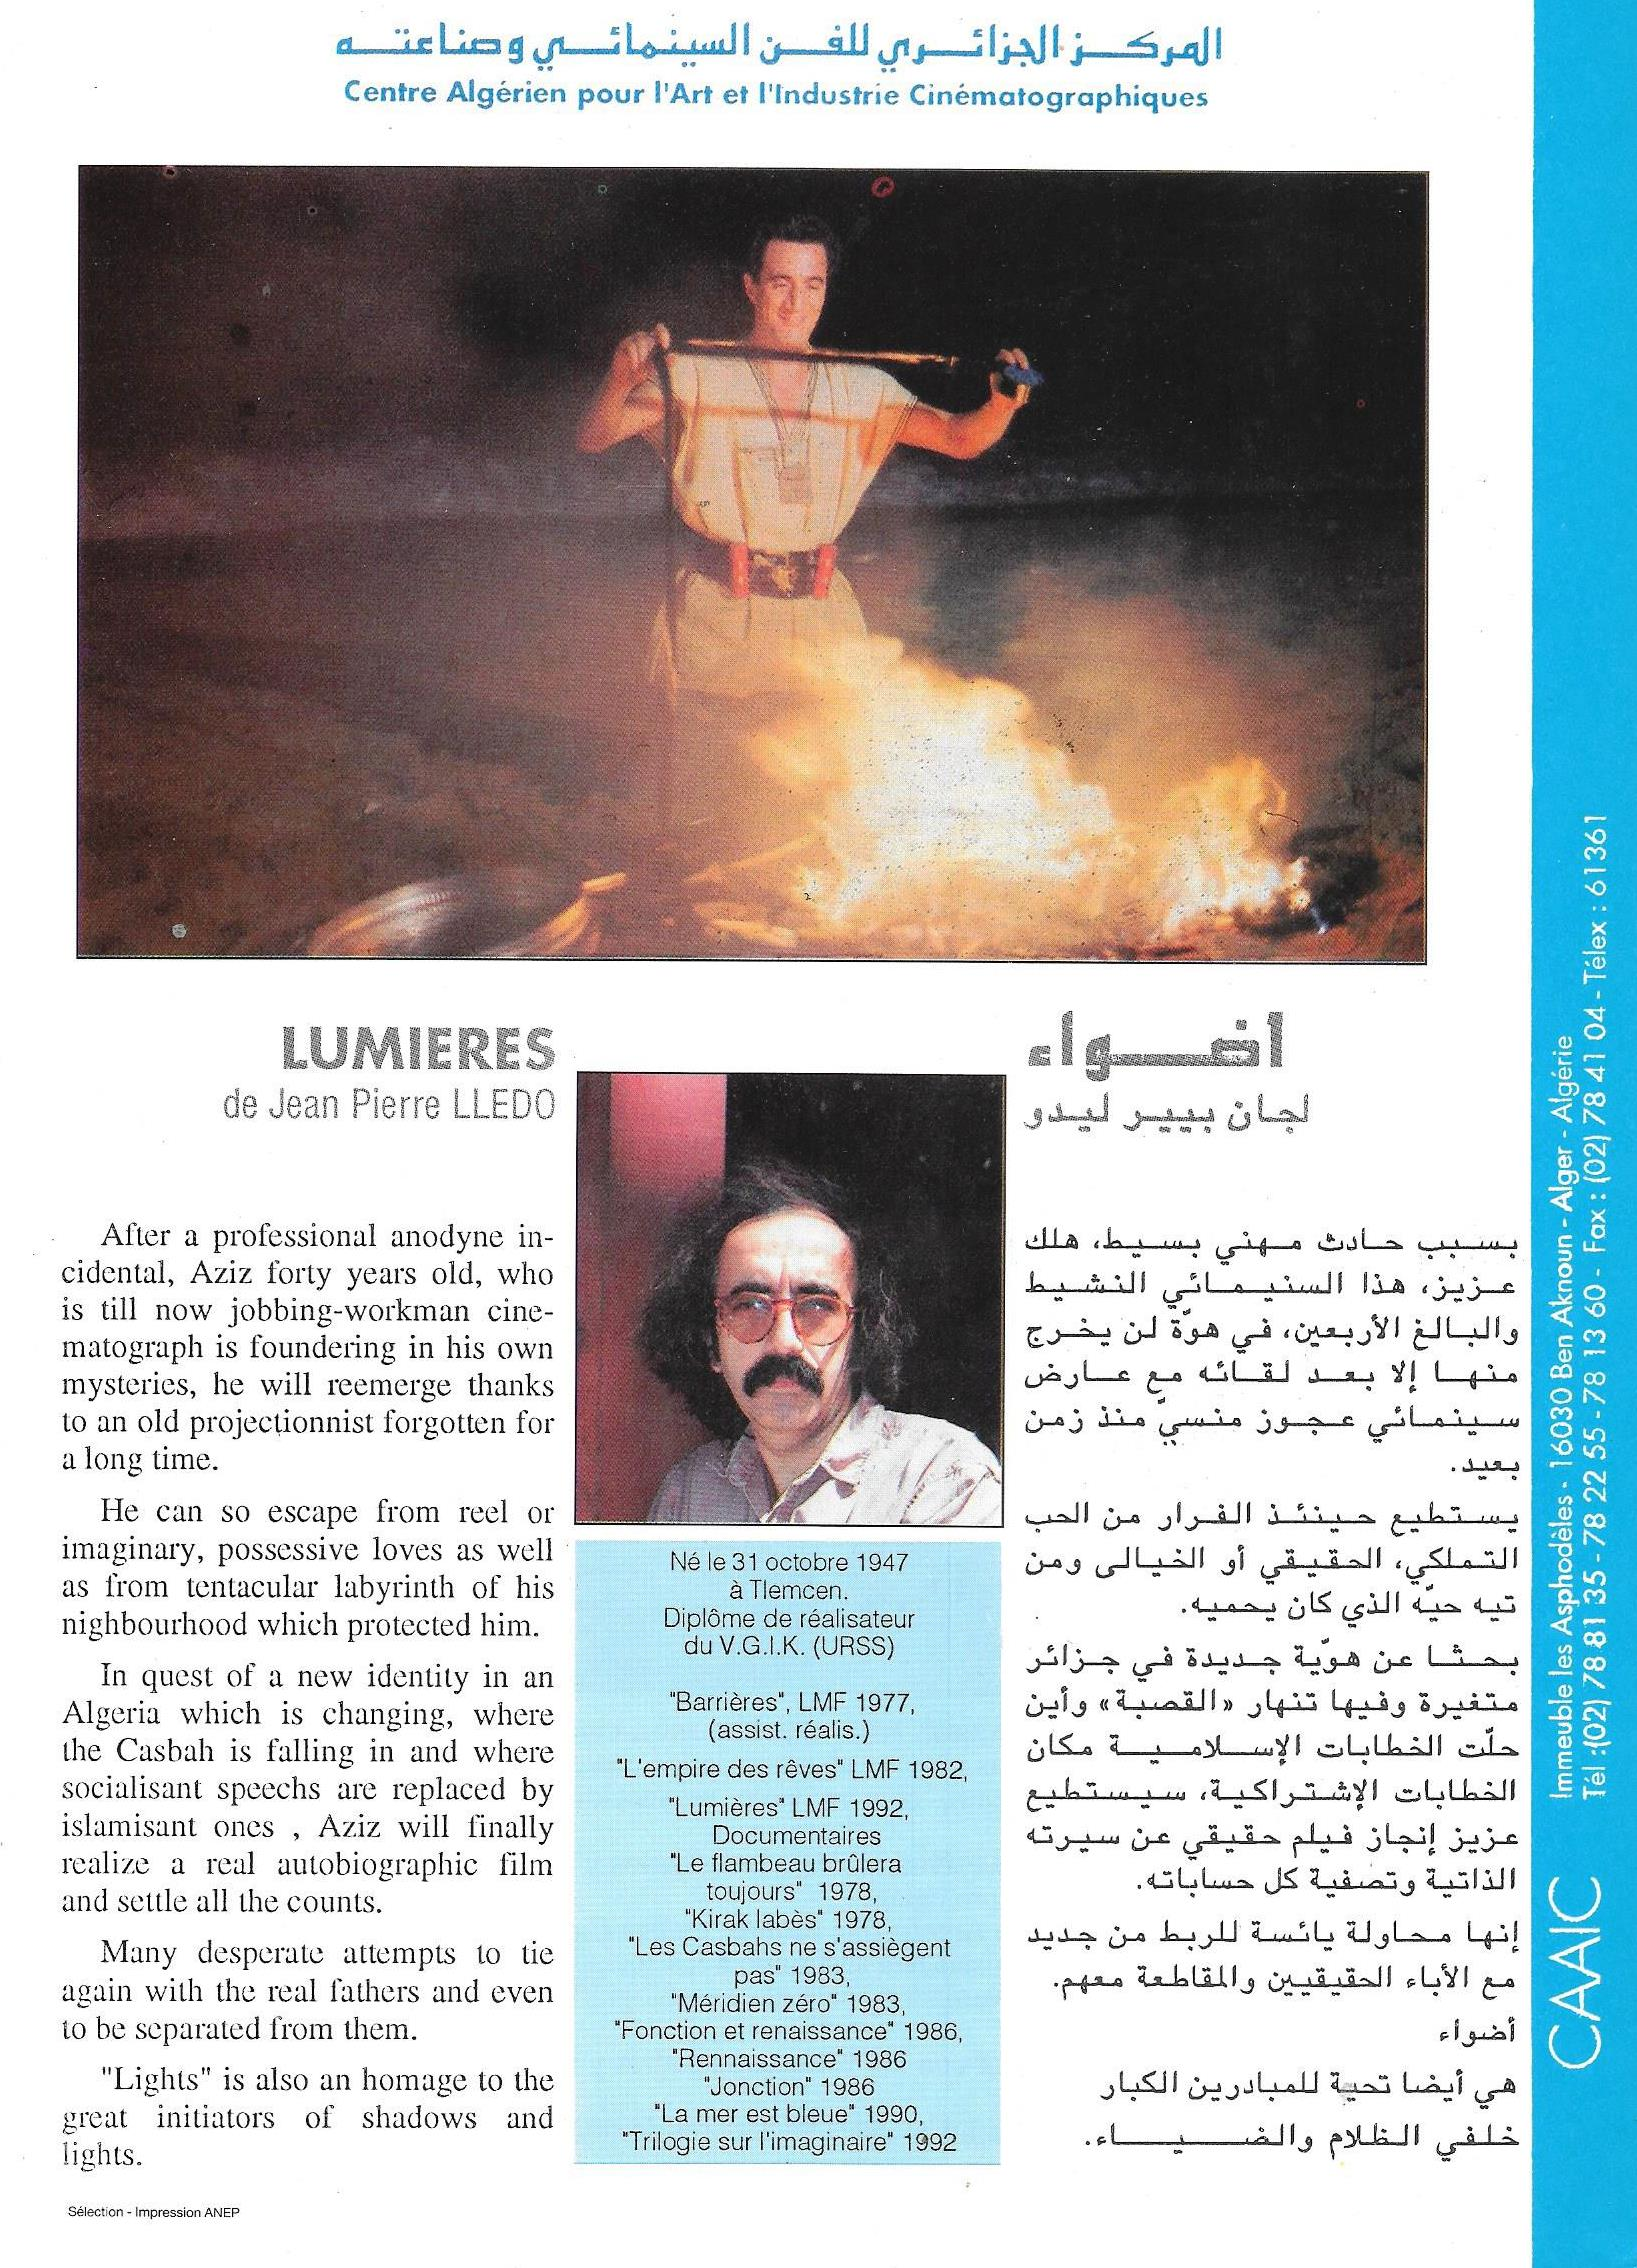 LUMIERES - Synopsis english + arabe + Photos